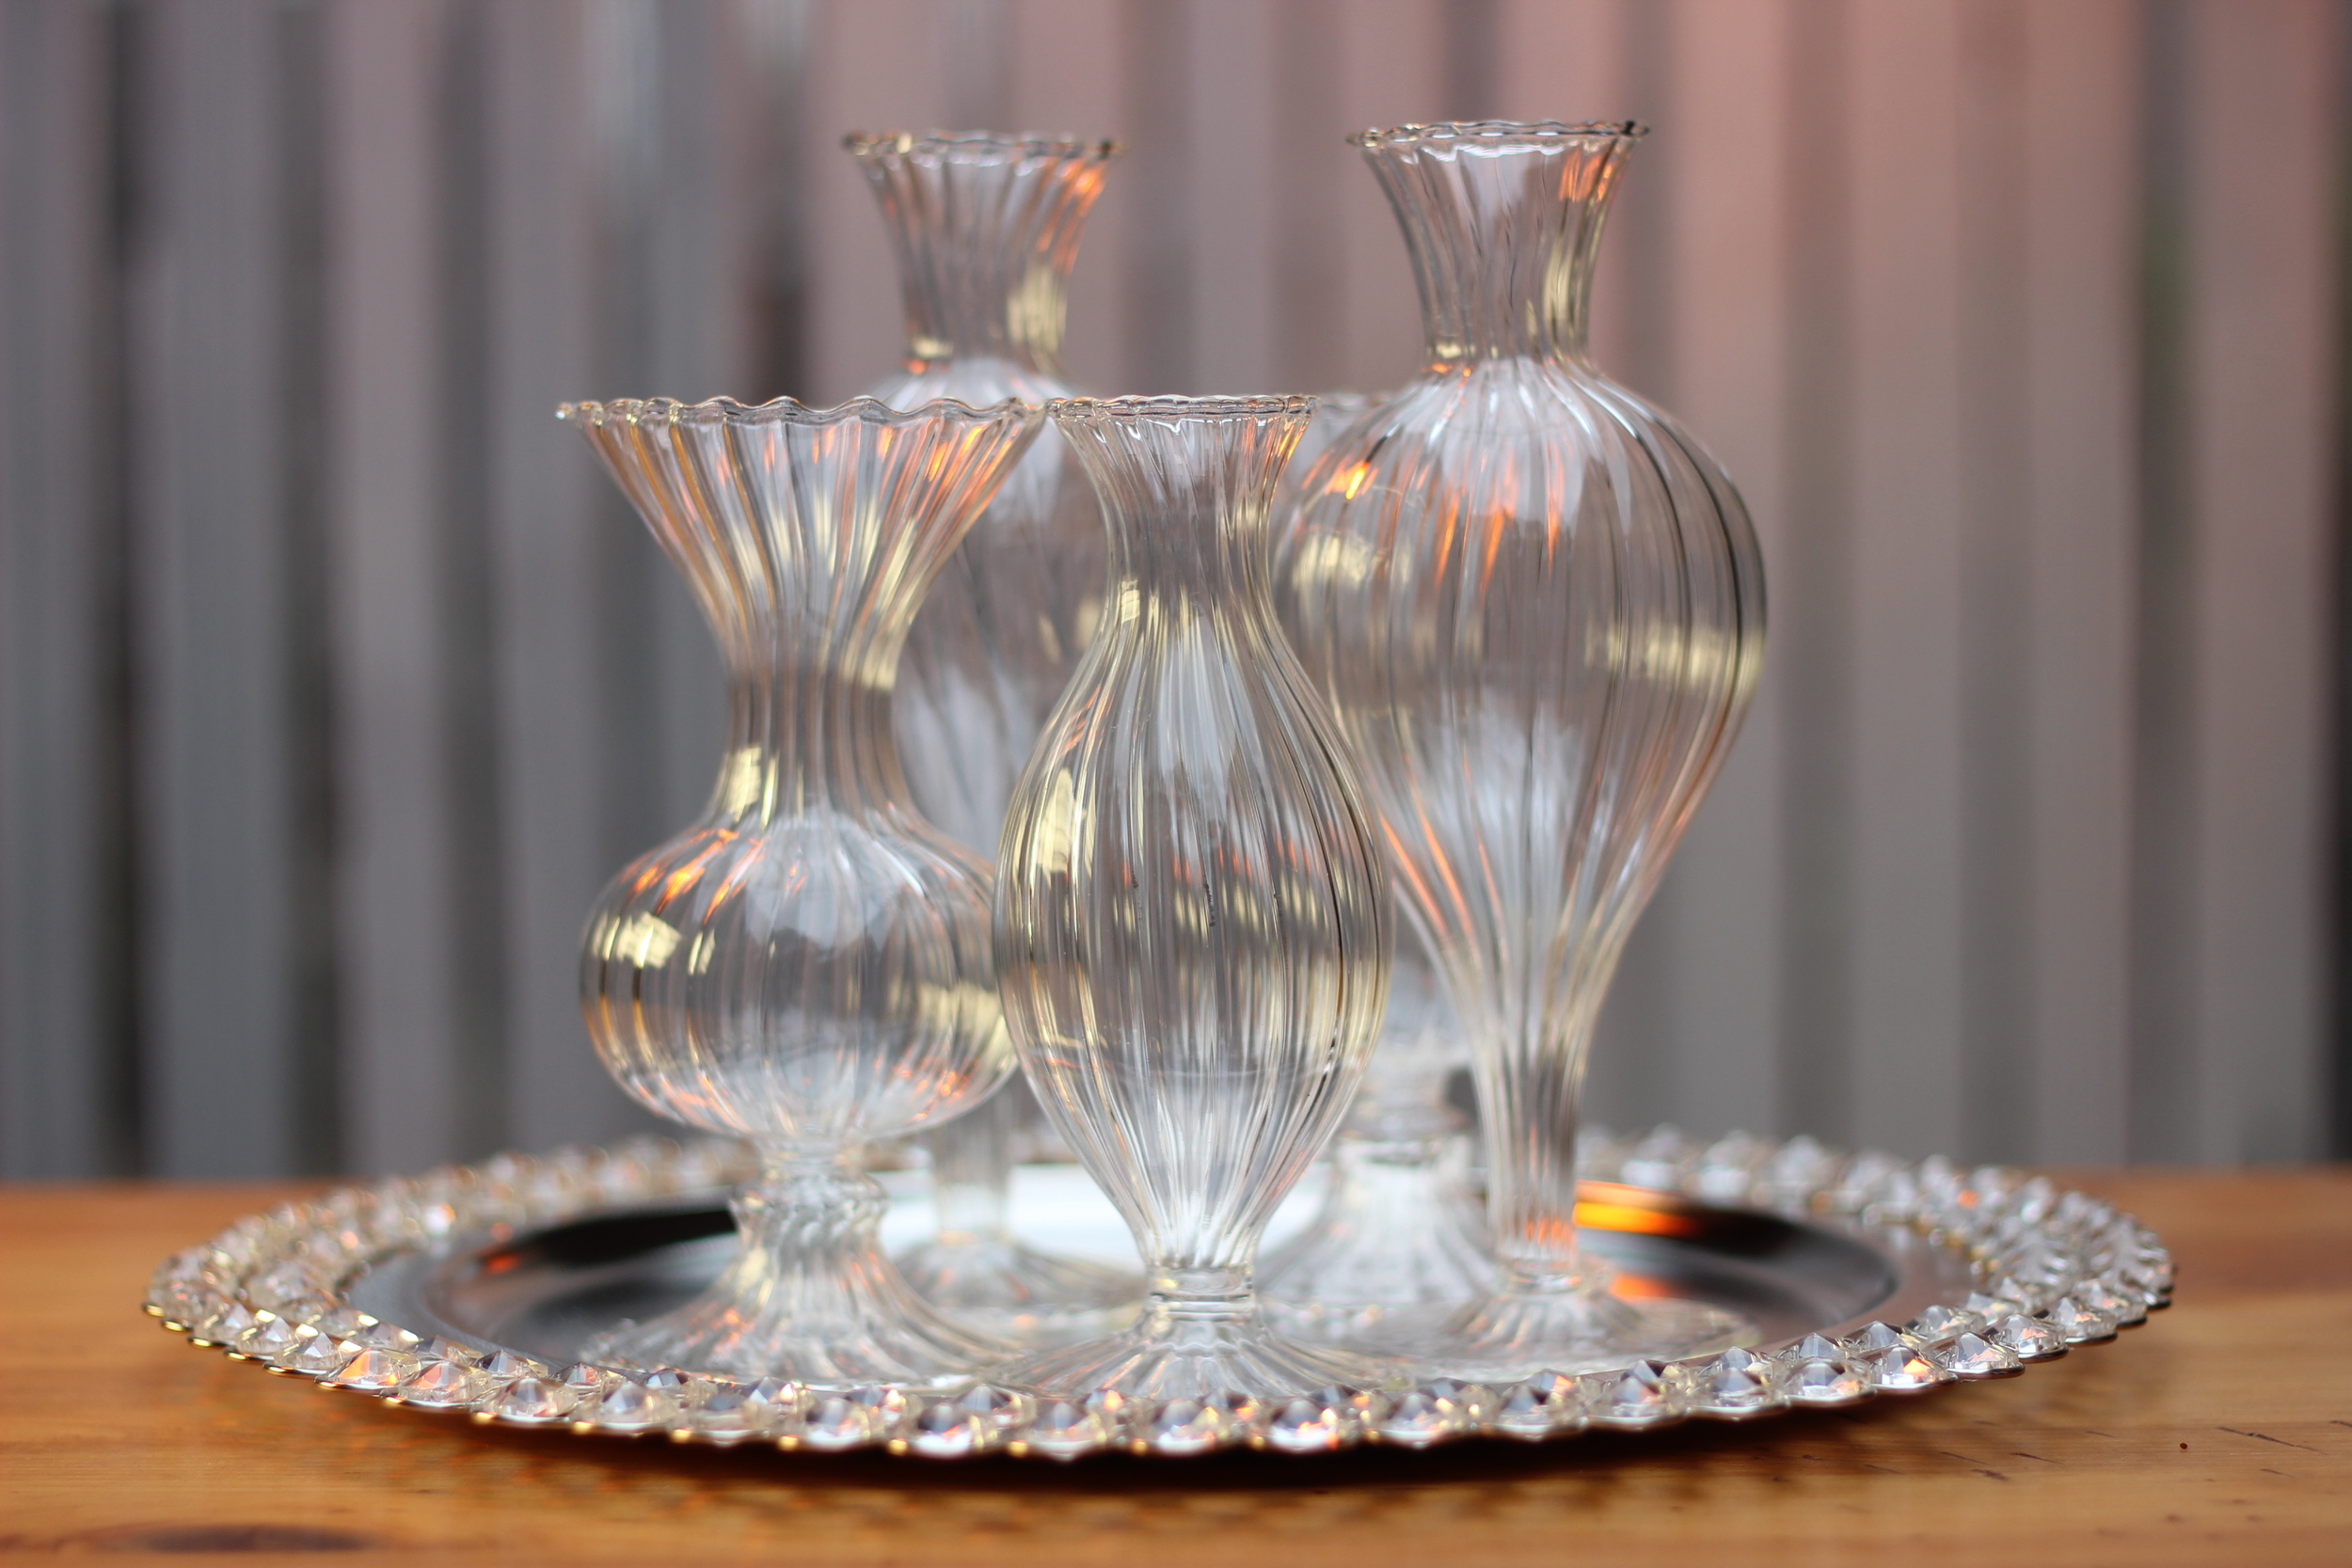 Here are the five bud vases of similar but different height and shape that you saw.